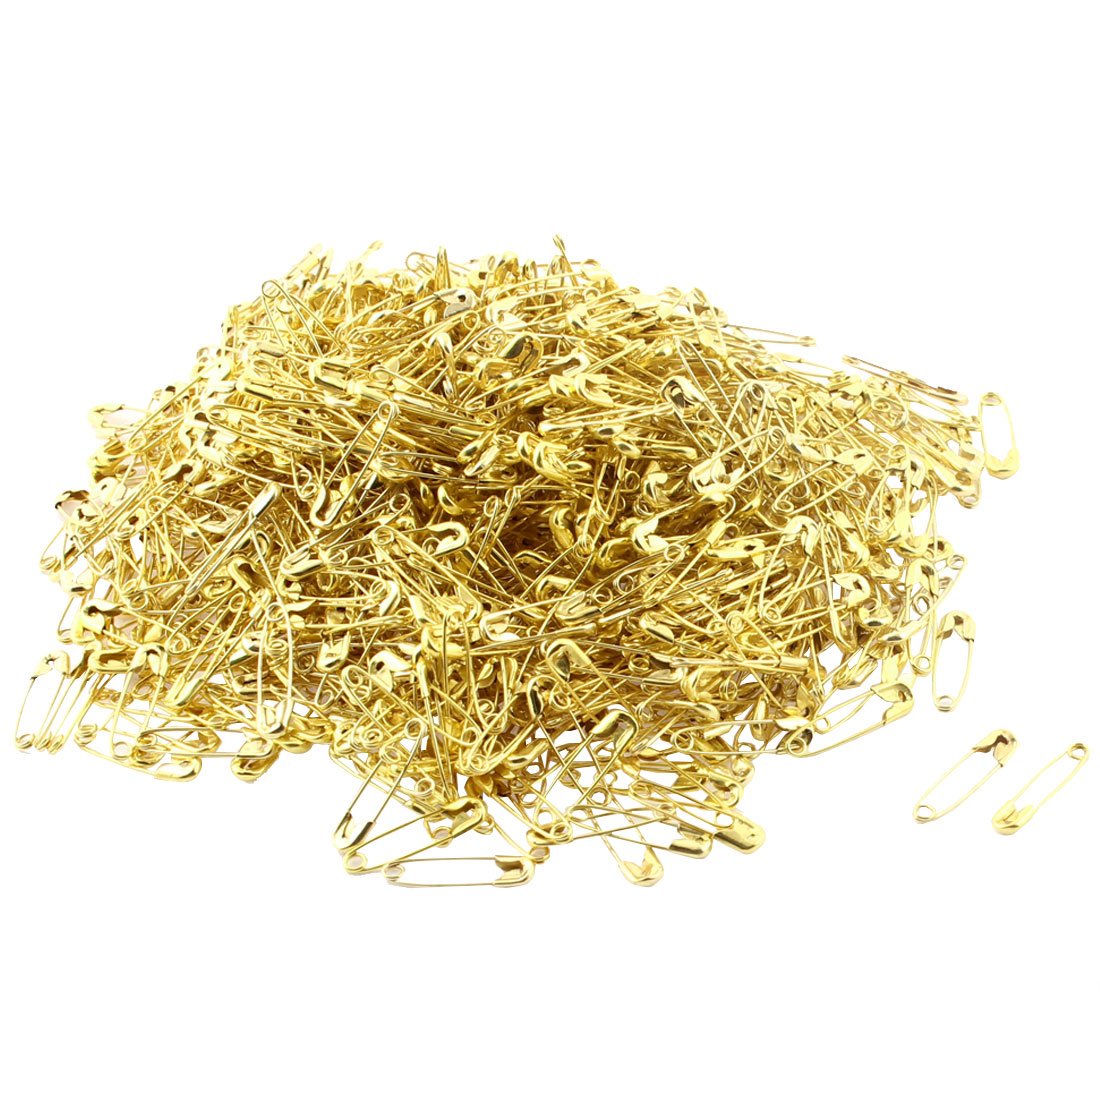 Costume Sewing Dressmaking DIY Craft Metal Tiny Safety Pins Gold Tone 1000pcs